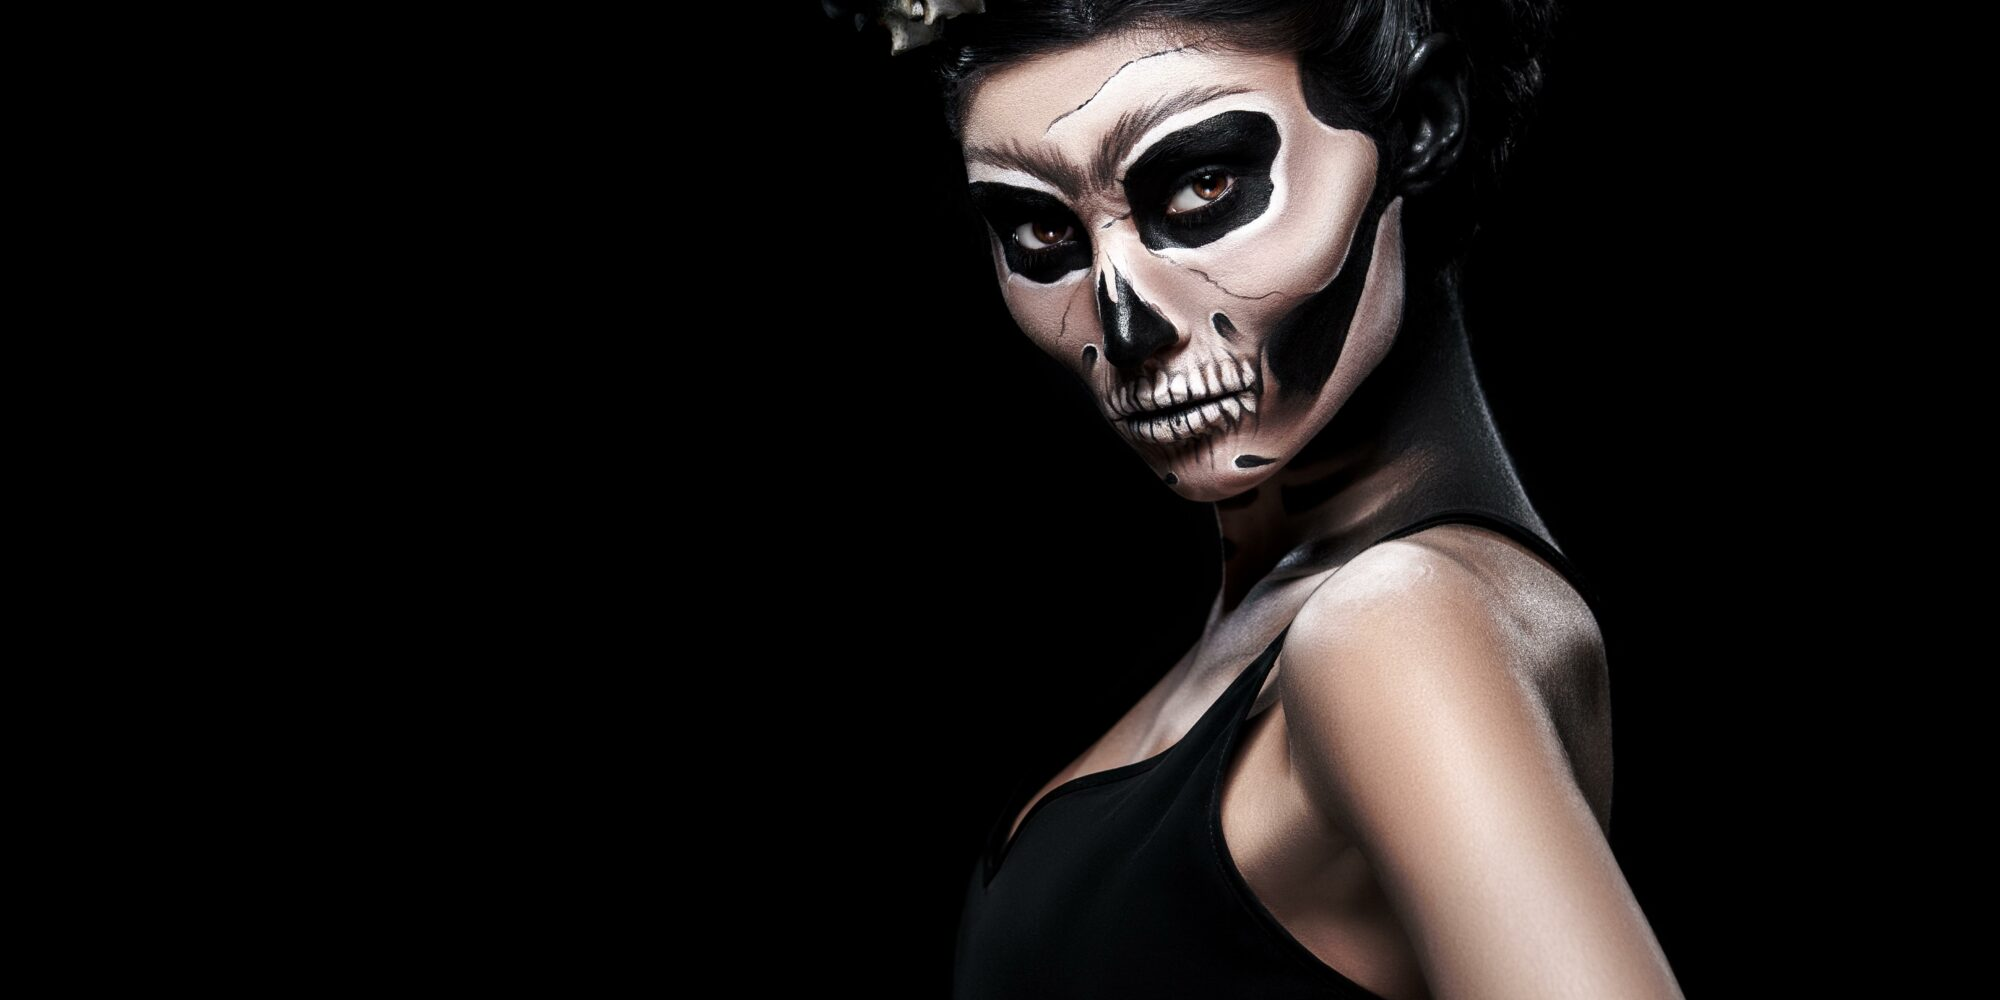 Halloween Could Be Spooky For Beauty This Year